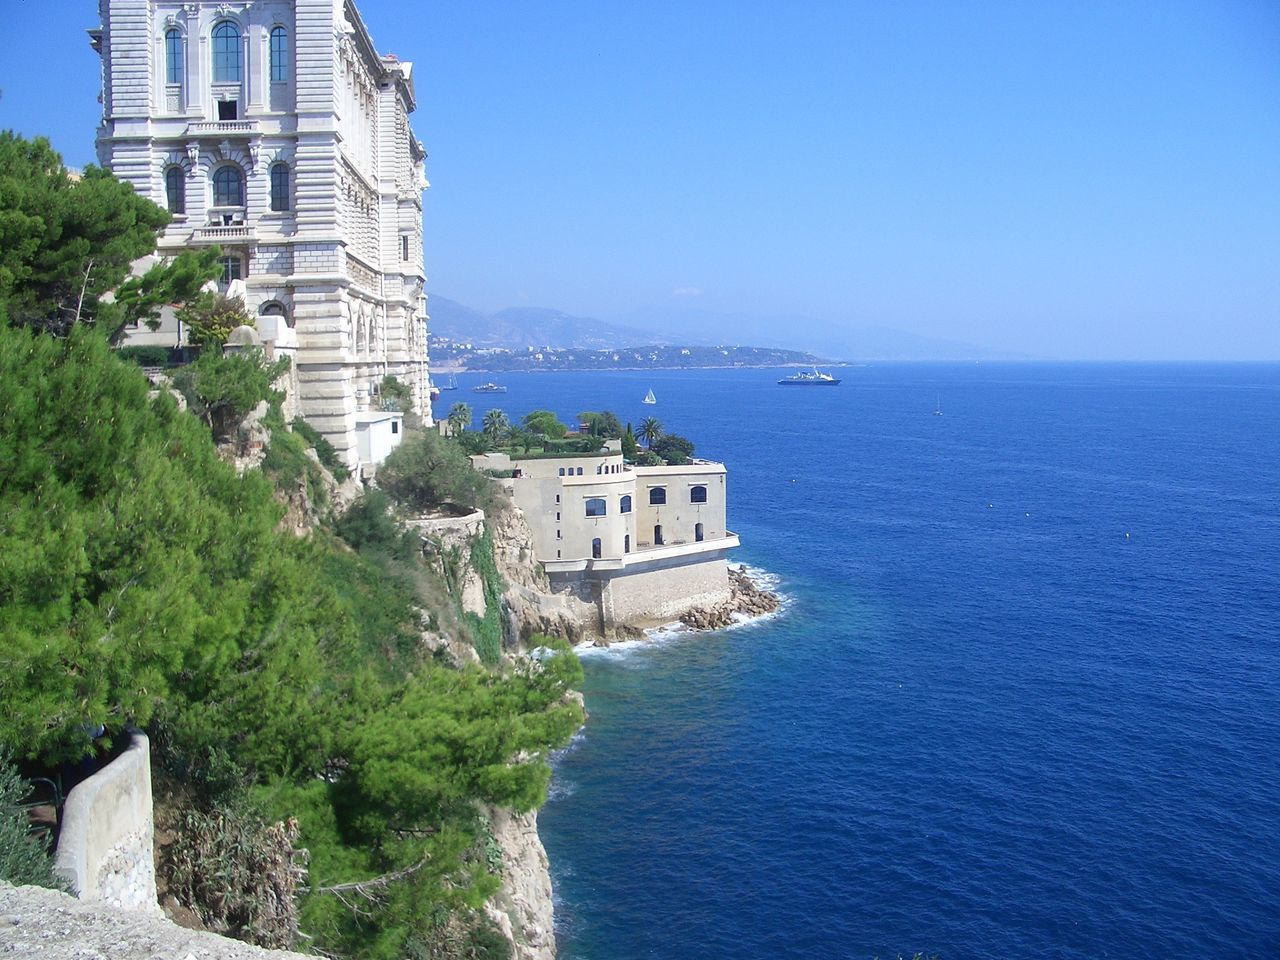 architecture, sea, built structure, building exterior, water, nature, day, outdoors, history, no people, scenics, beauty in nature, sky, travel destinations, cliff, tree, horizon over water, clear sky